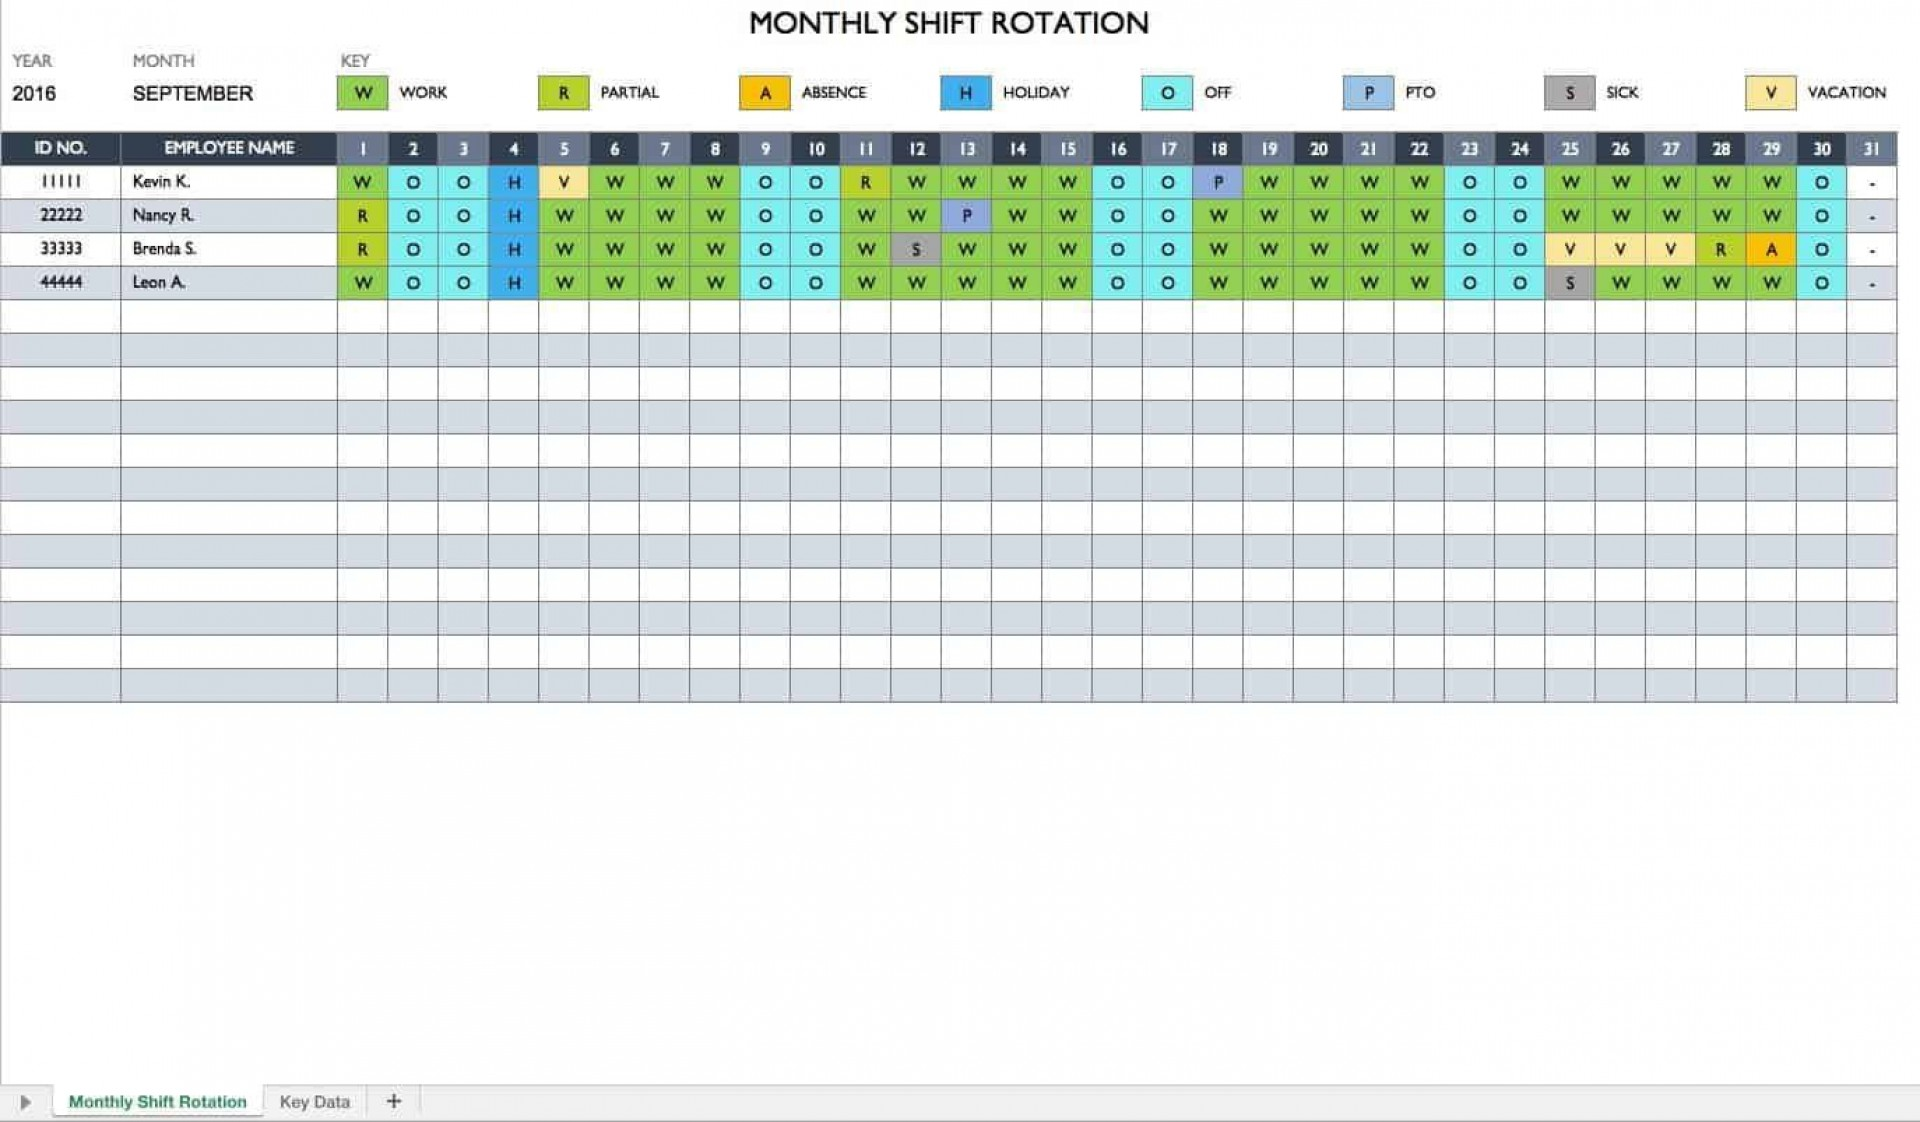 009 Dreaded Excel 24 Hour Shift Schedule Template High Resolution 1920